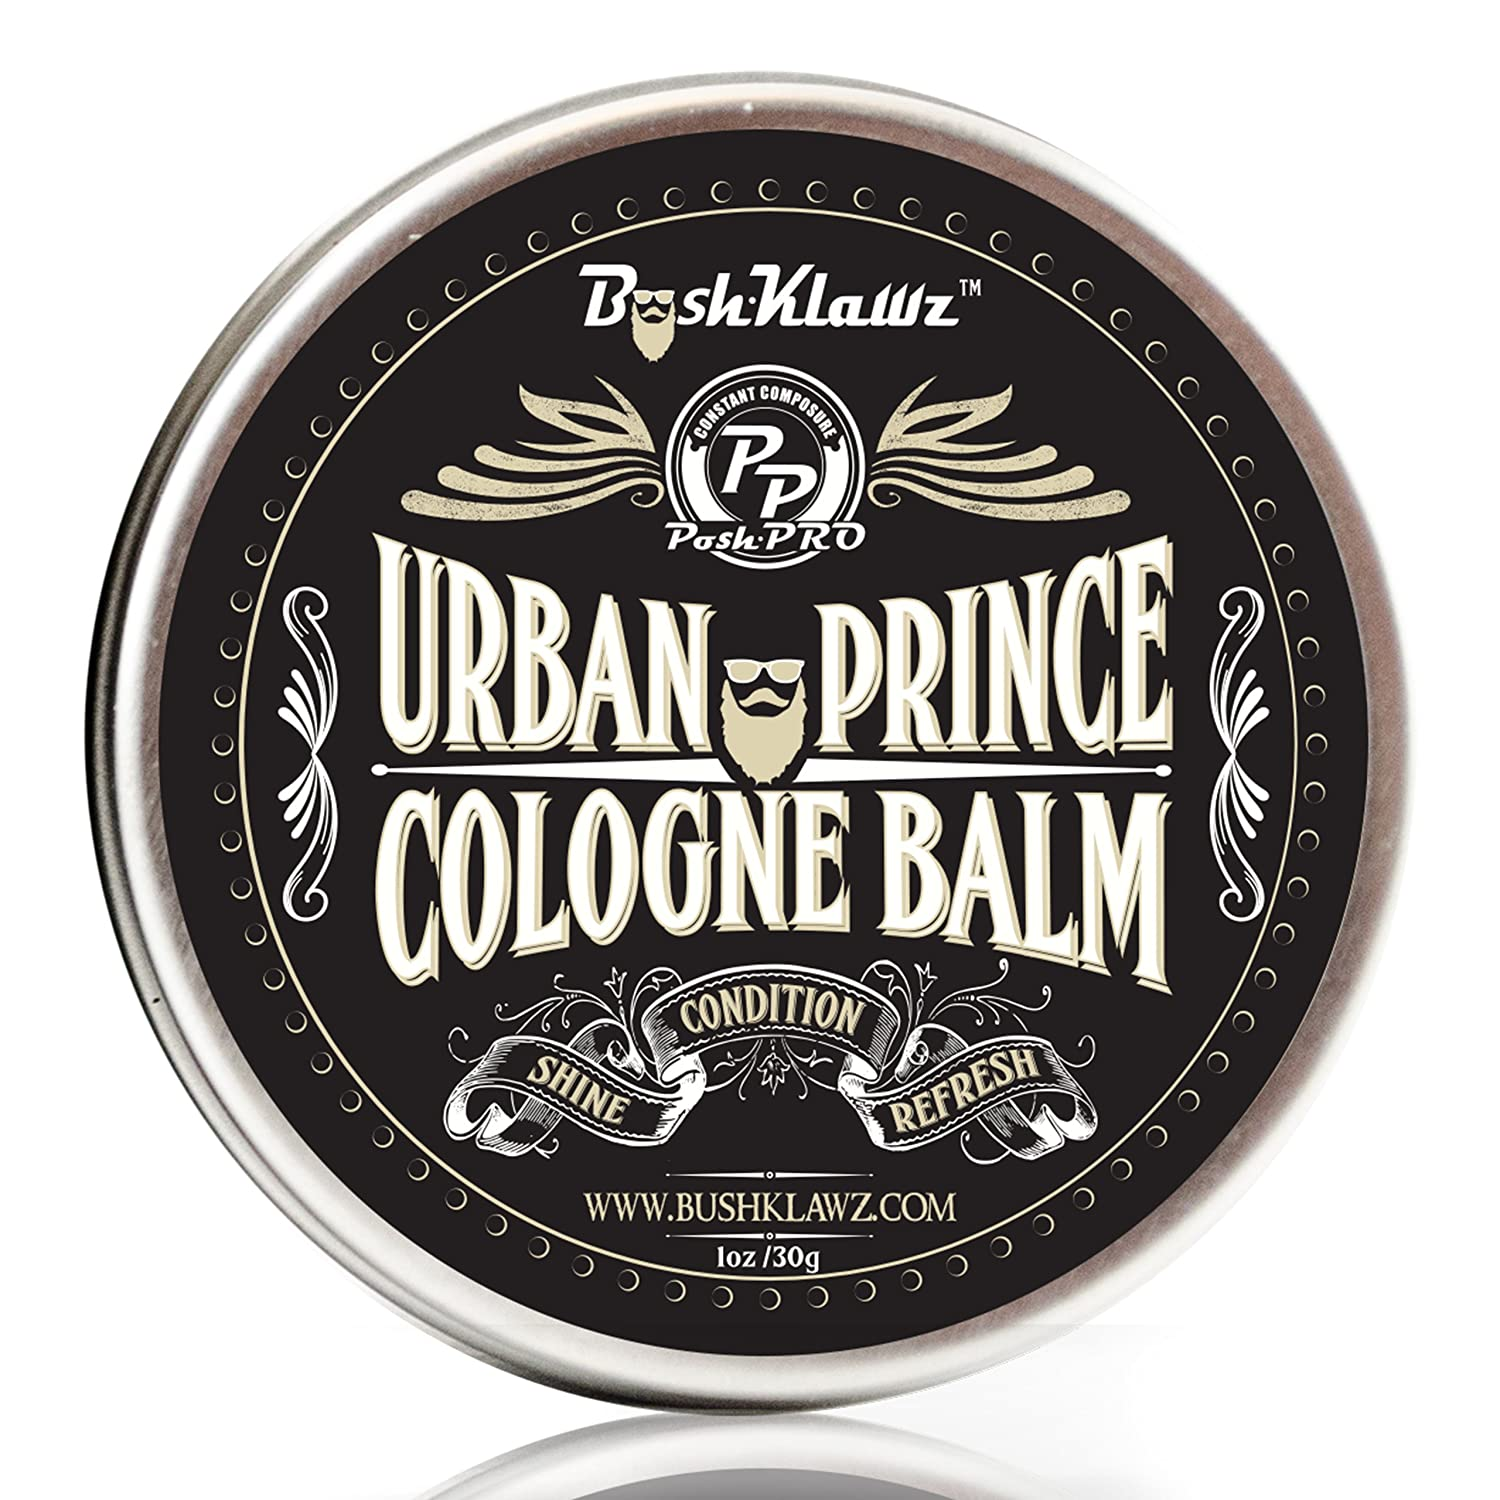 Urban Prince Solid Cologne Balm Fragrance Parfum - Refreshing Modern Urban Gentleman's Manly Scent Alcohol Free Cologne for travel Best Gift for Men